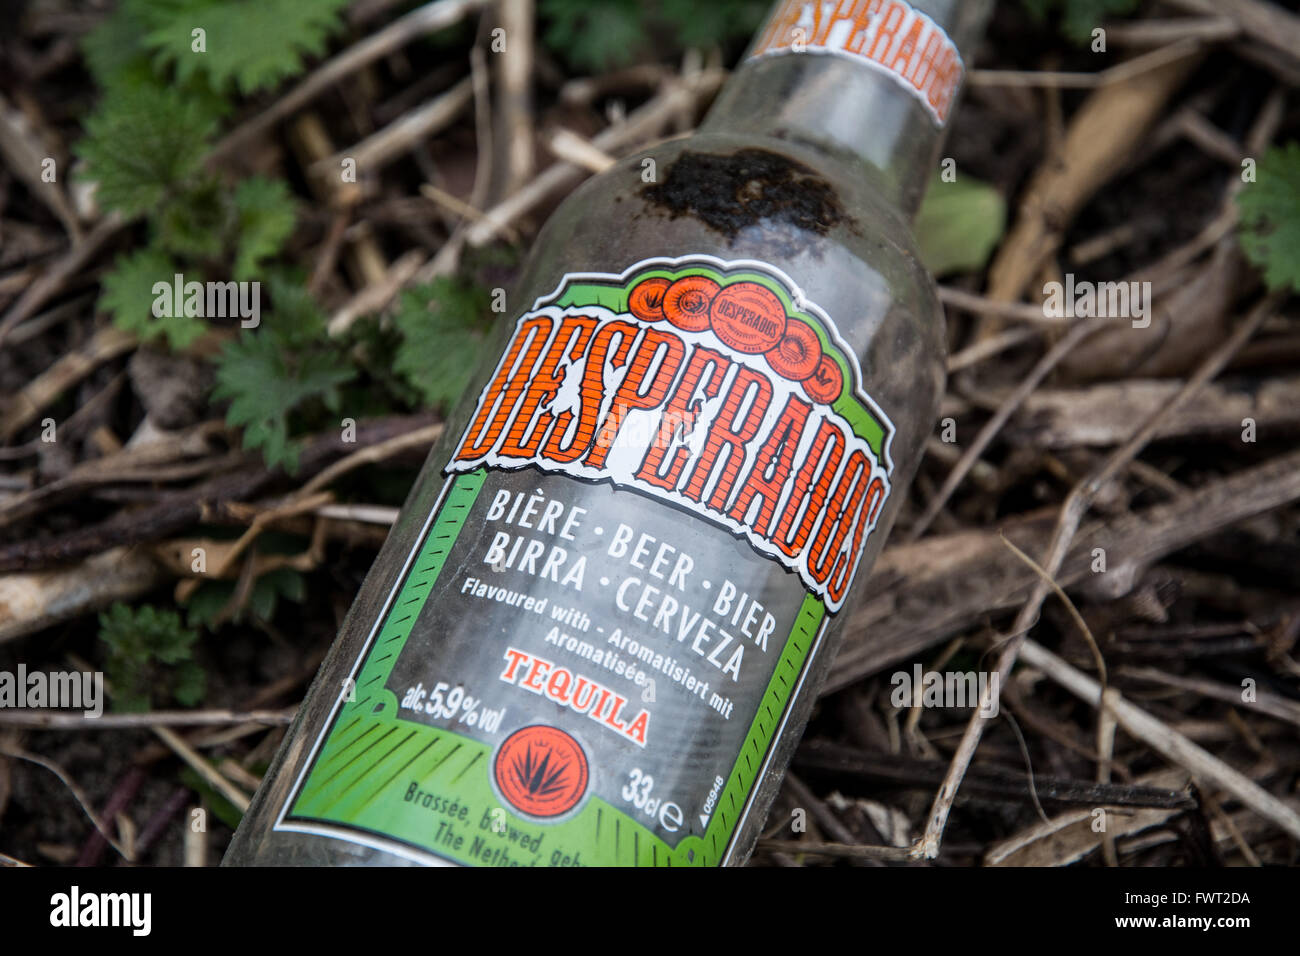 An Empty Desperados Beer Bottle Thrown Into A Bush On The Side Of The Stock Photo Alamy